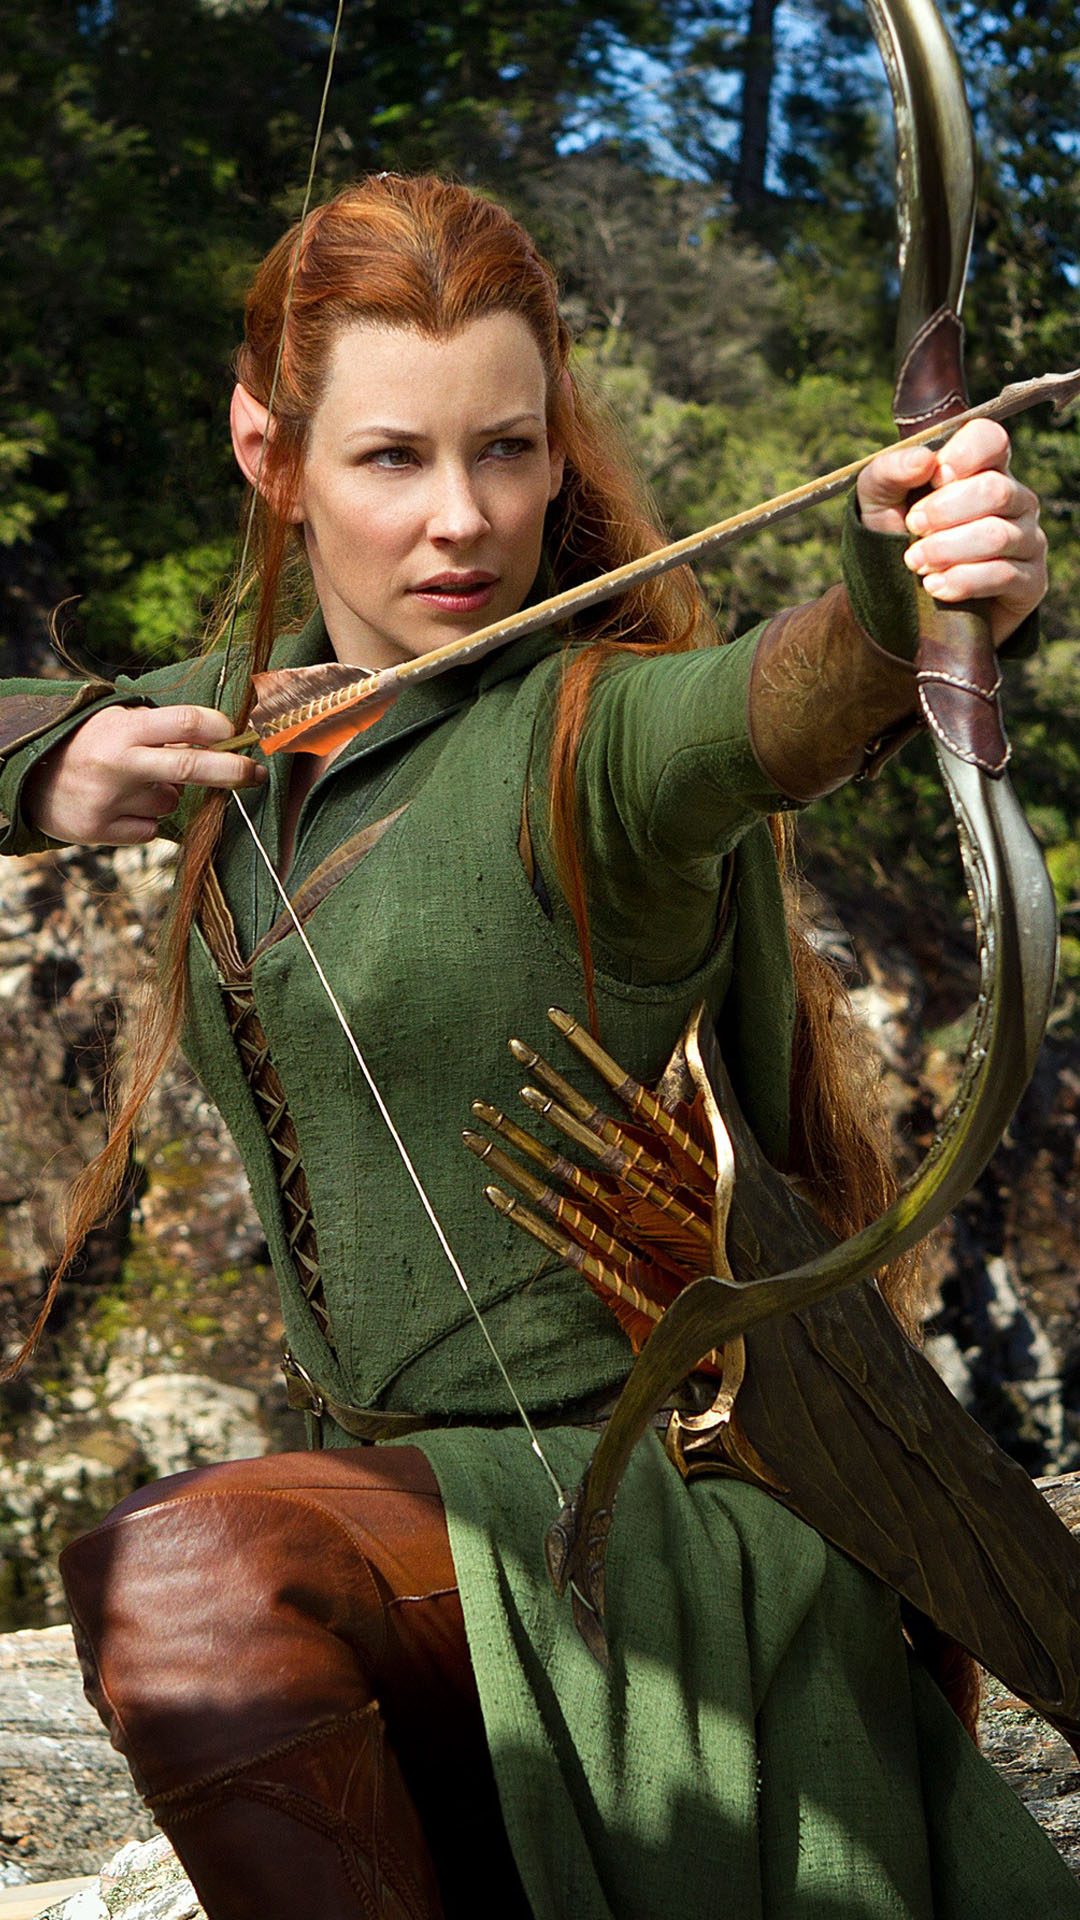 https://i2.wp.com/www.freeapplewallpapers.com/wp-content/uploads/2015/01/Tauriel-in-Hobbit.jpg